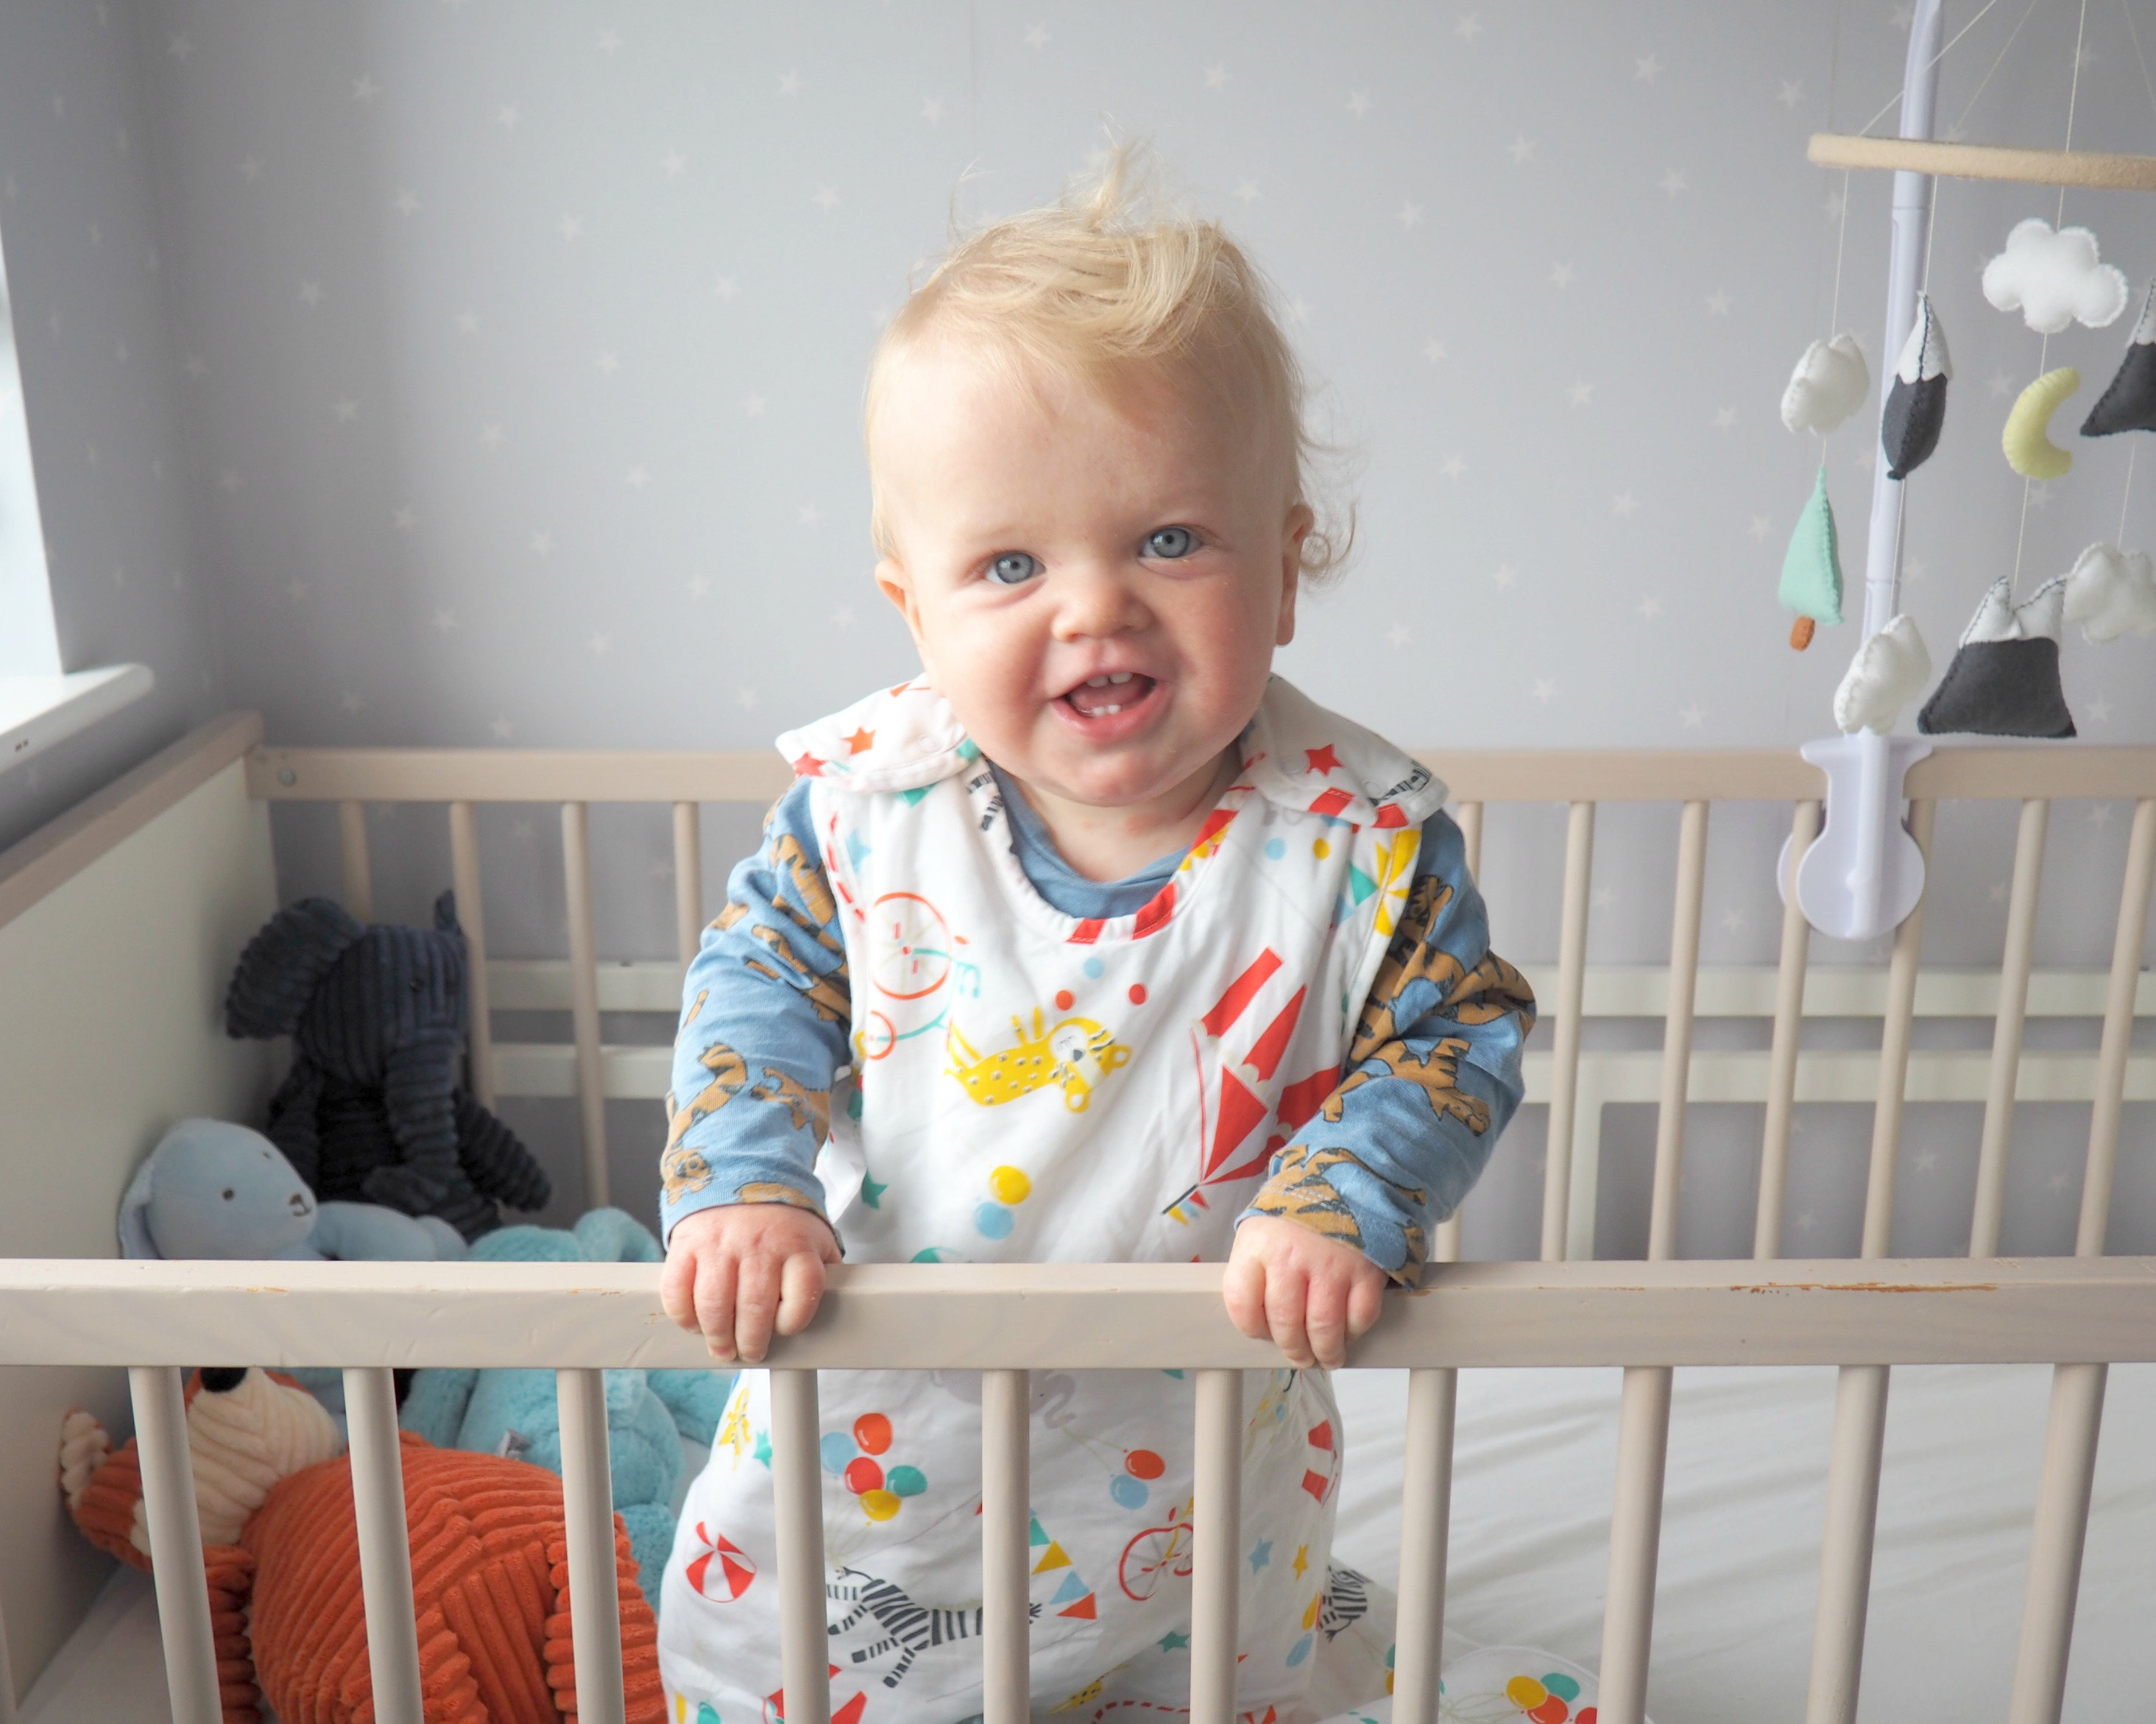 Arlo's Day – Routine of a 10 Month Old Baby